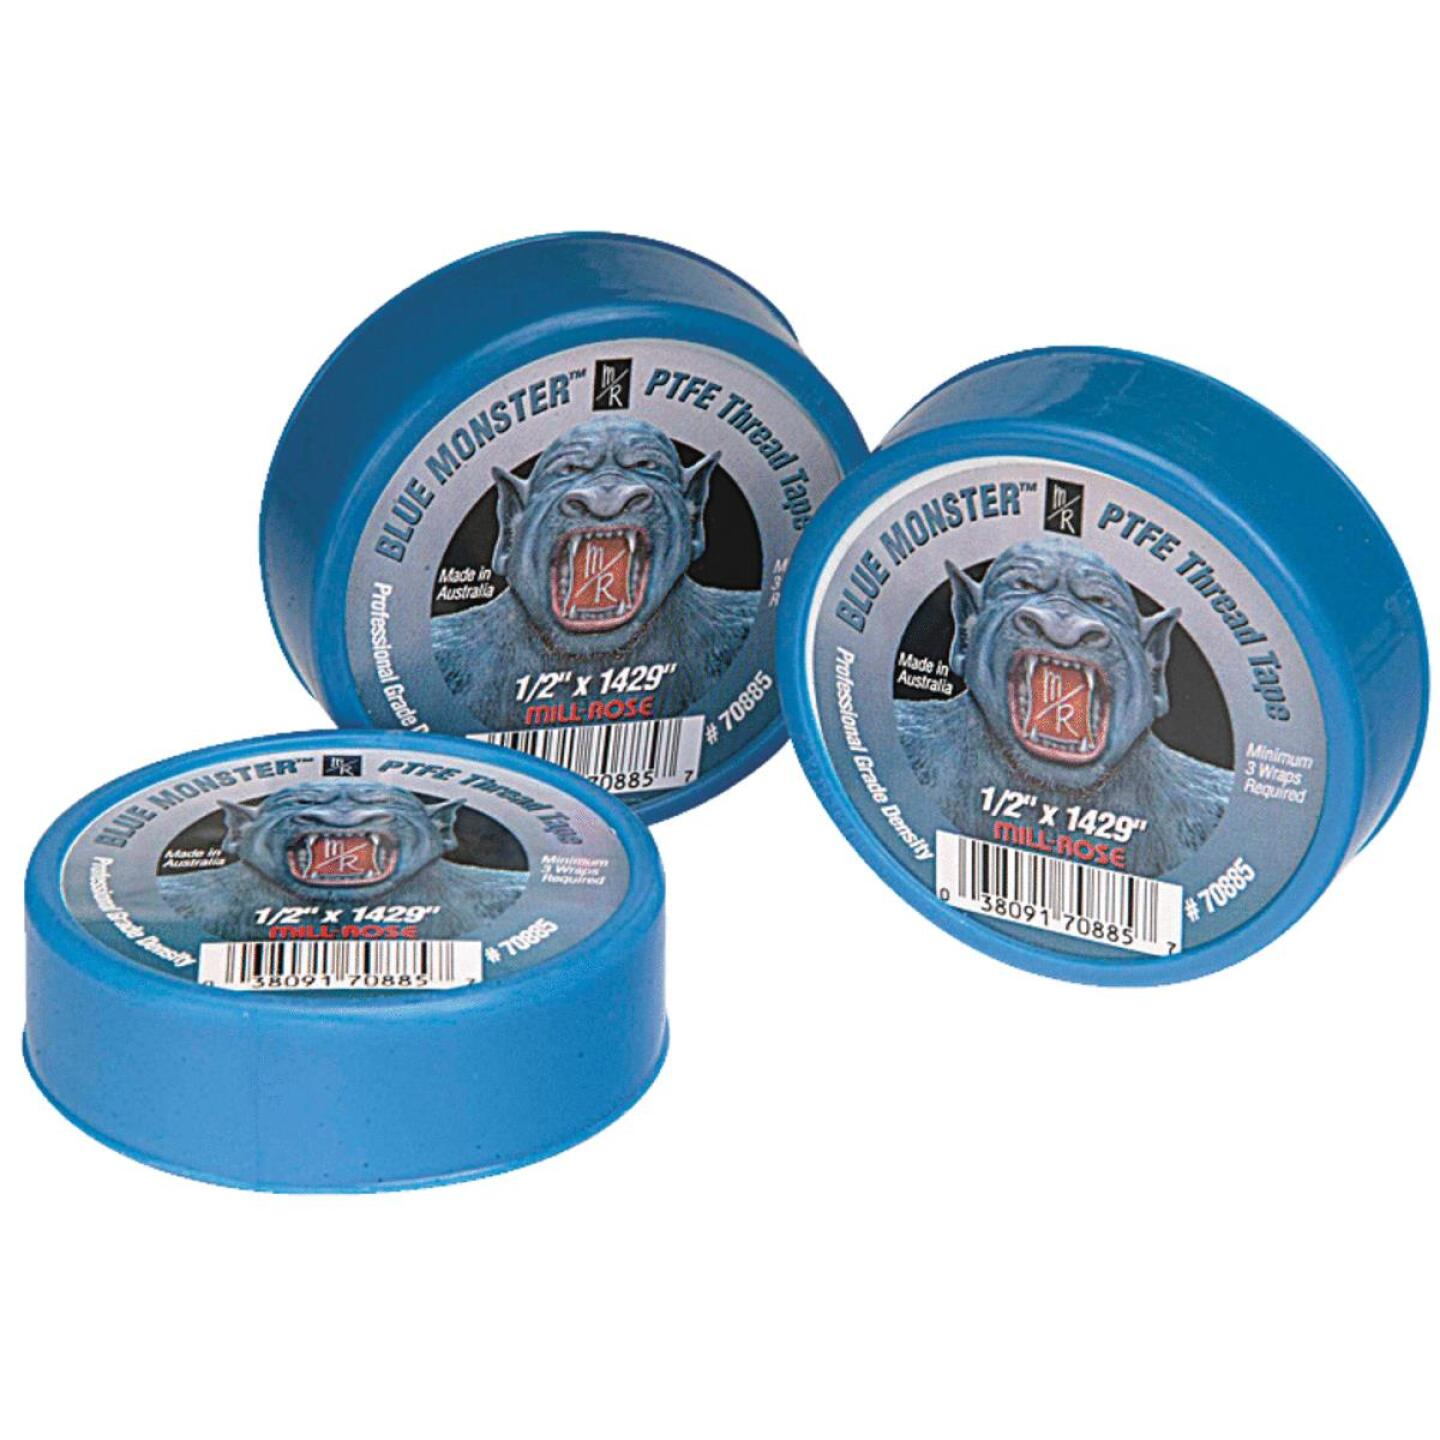 BLUE MONSTER 3/4 In. x 1429 In. Blue Thread Seal Tape Image 1